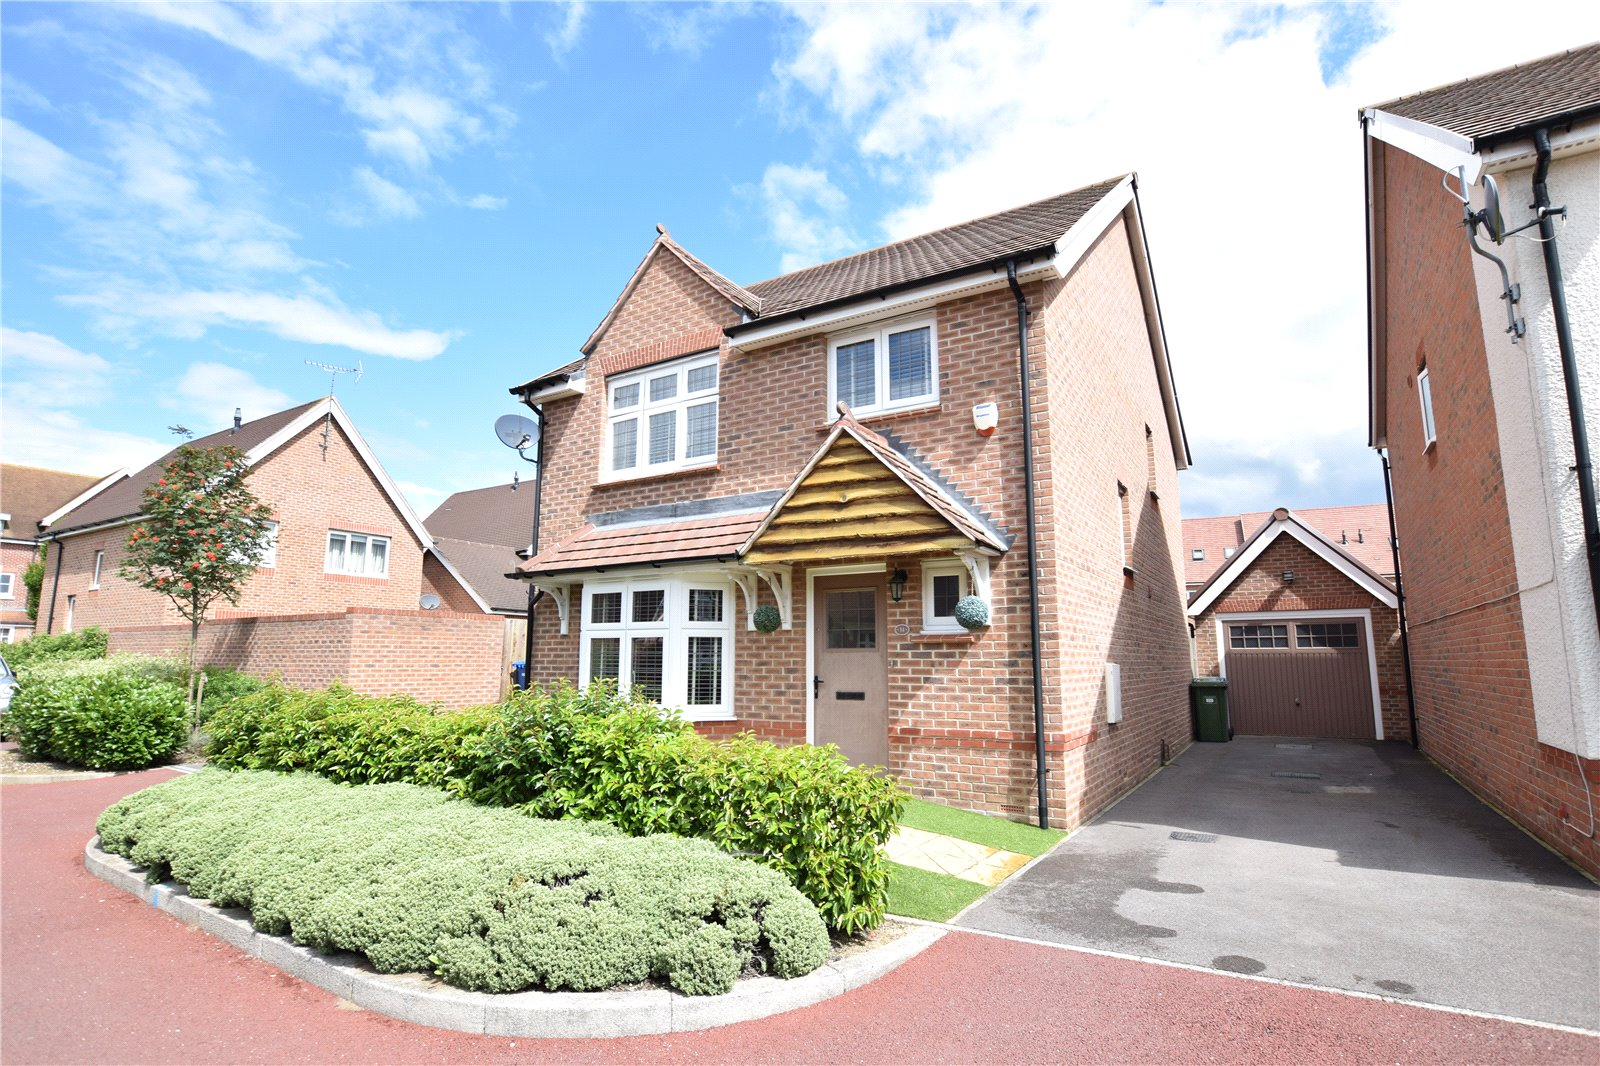 4 Bedrooms Detached House for sale in Bunting Lane, Jennett's Park, Bracknell, Berkshire, RG12